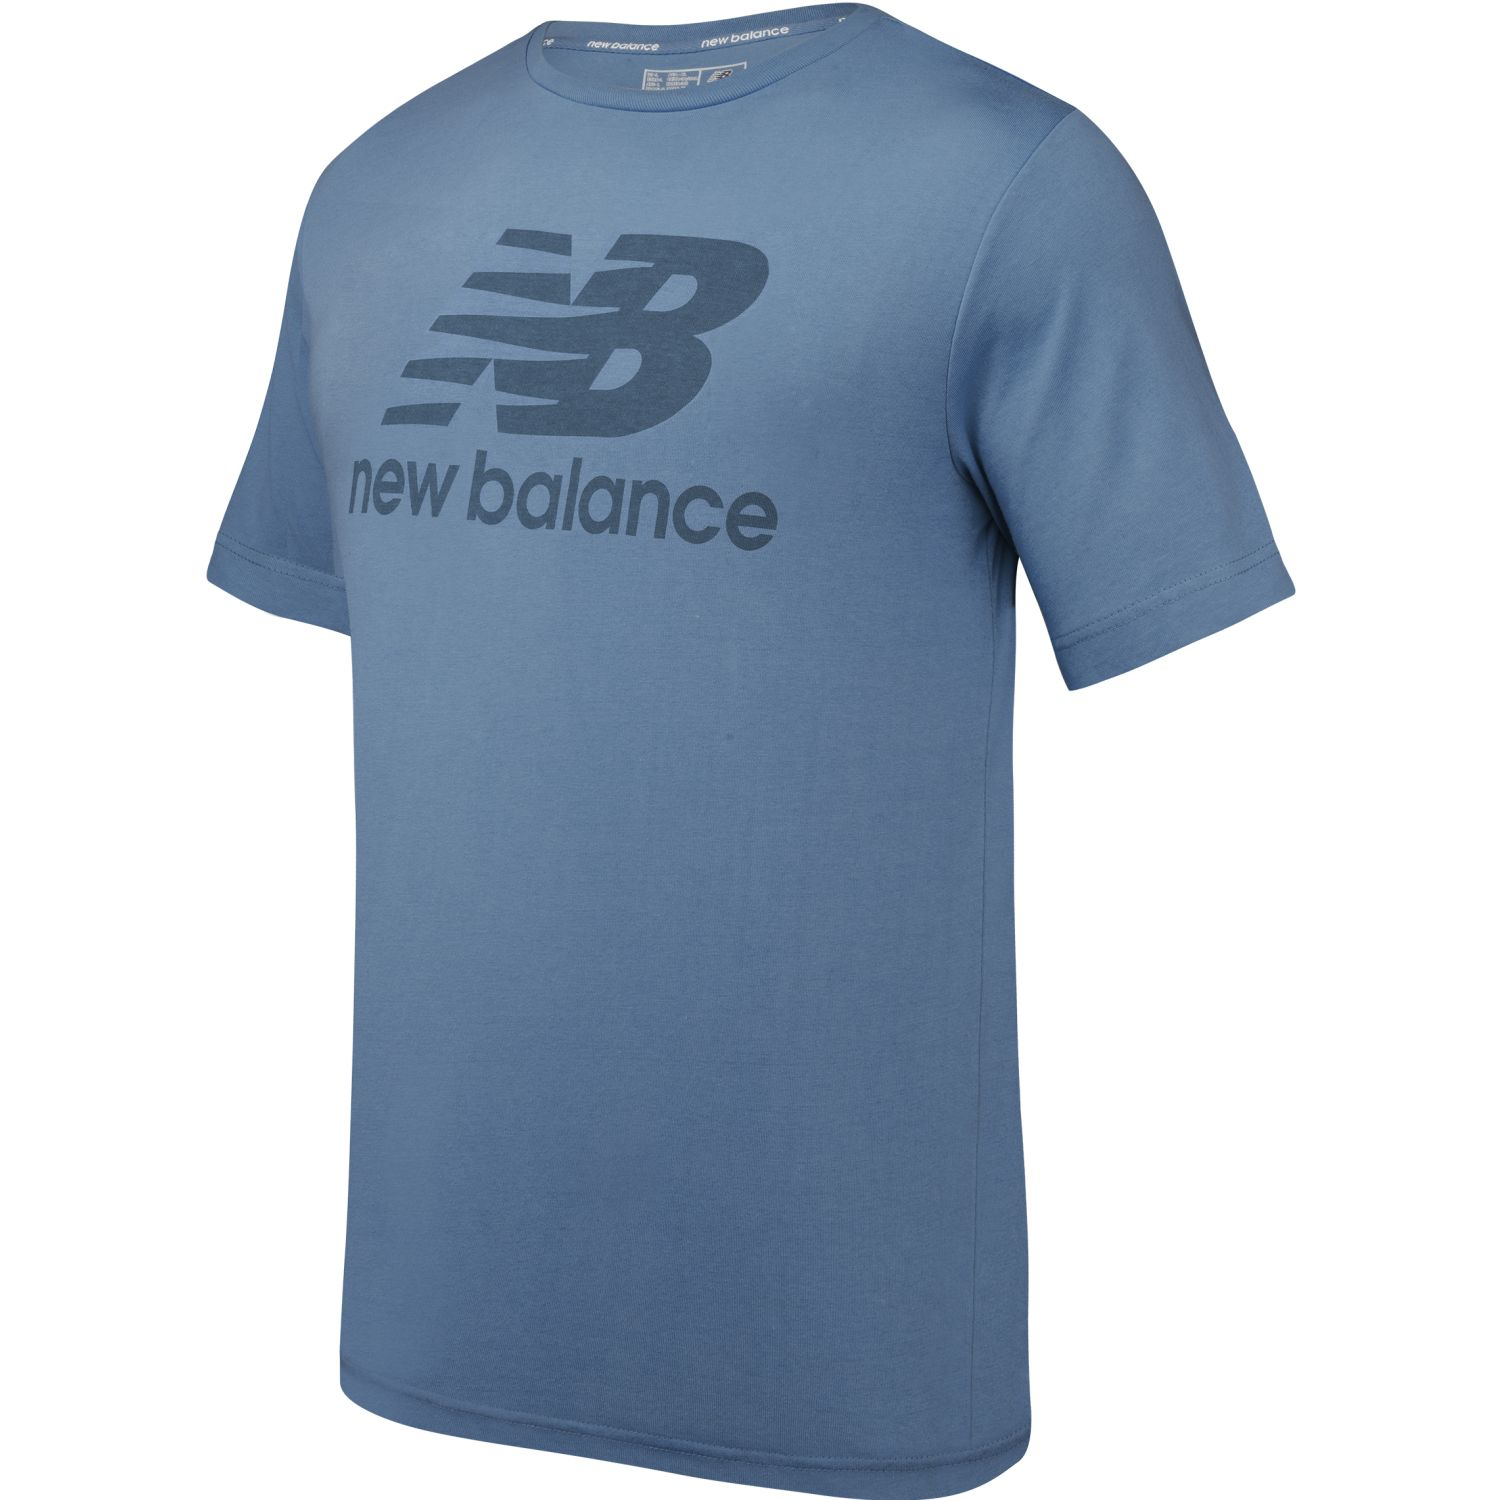 New Balance Polera Essentials New Balance AZUL MARINO Hoodies deportivos